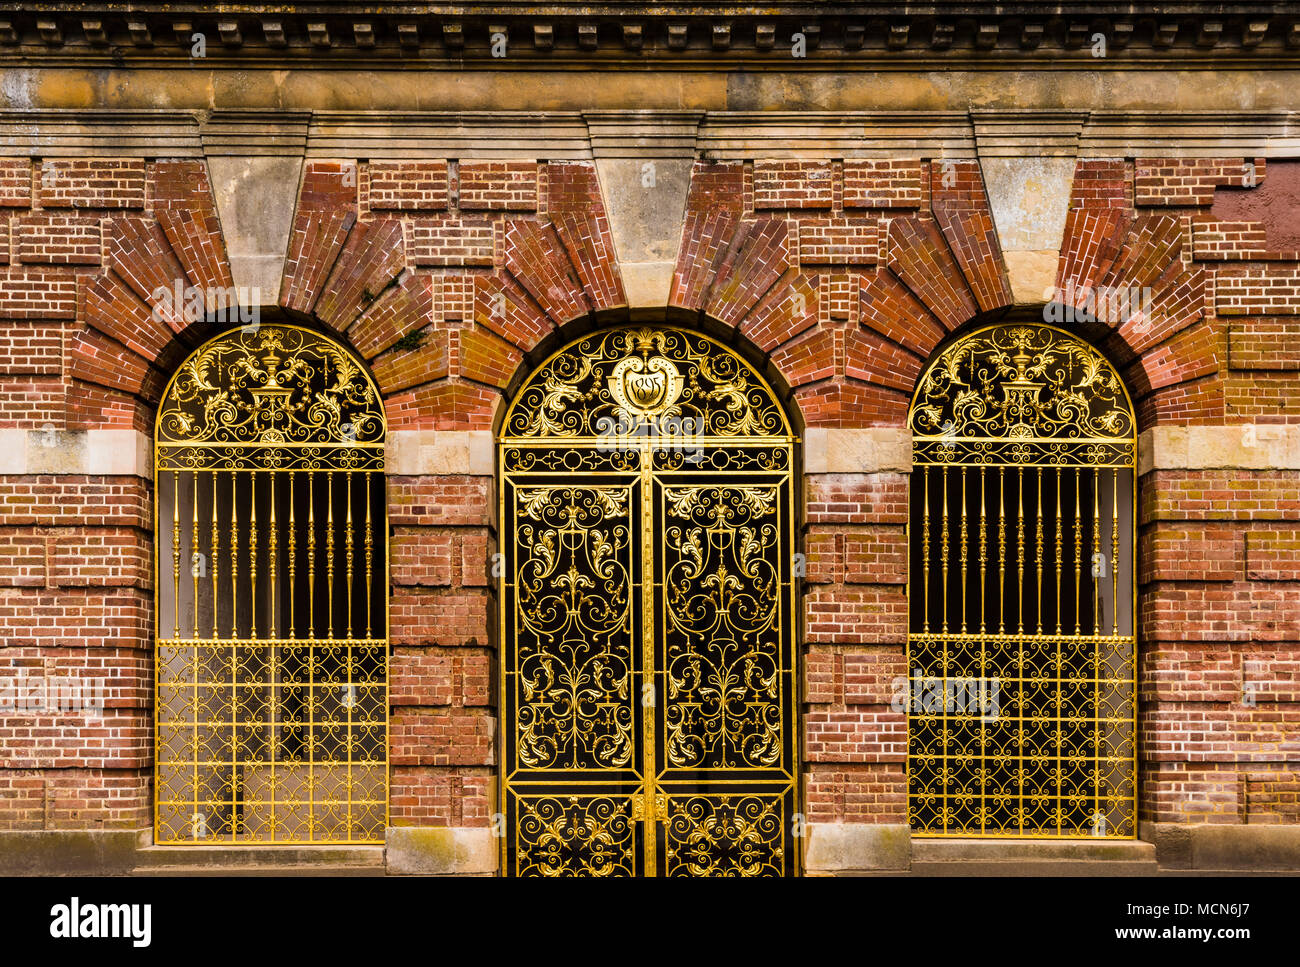 Three golden gates at Cliveden House, Buckinghamshire, UK - Stock Image